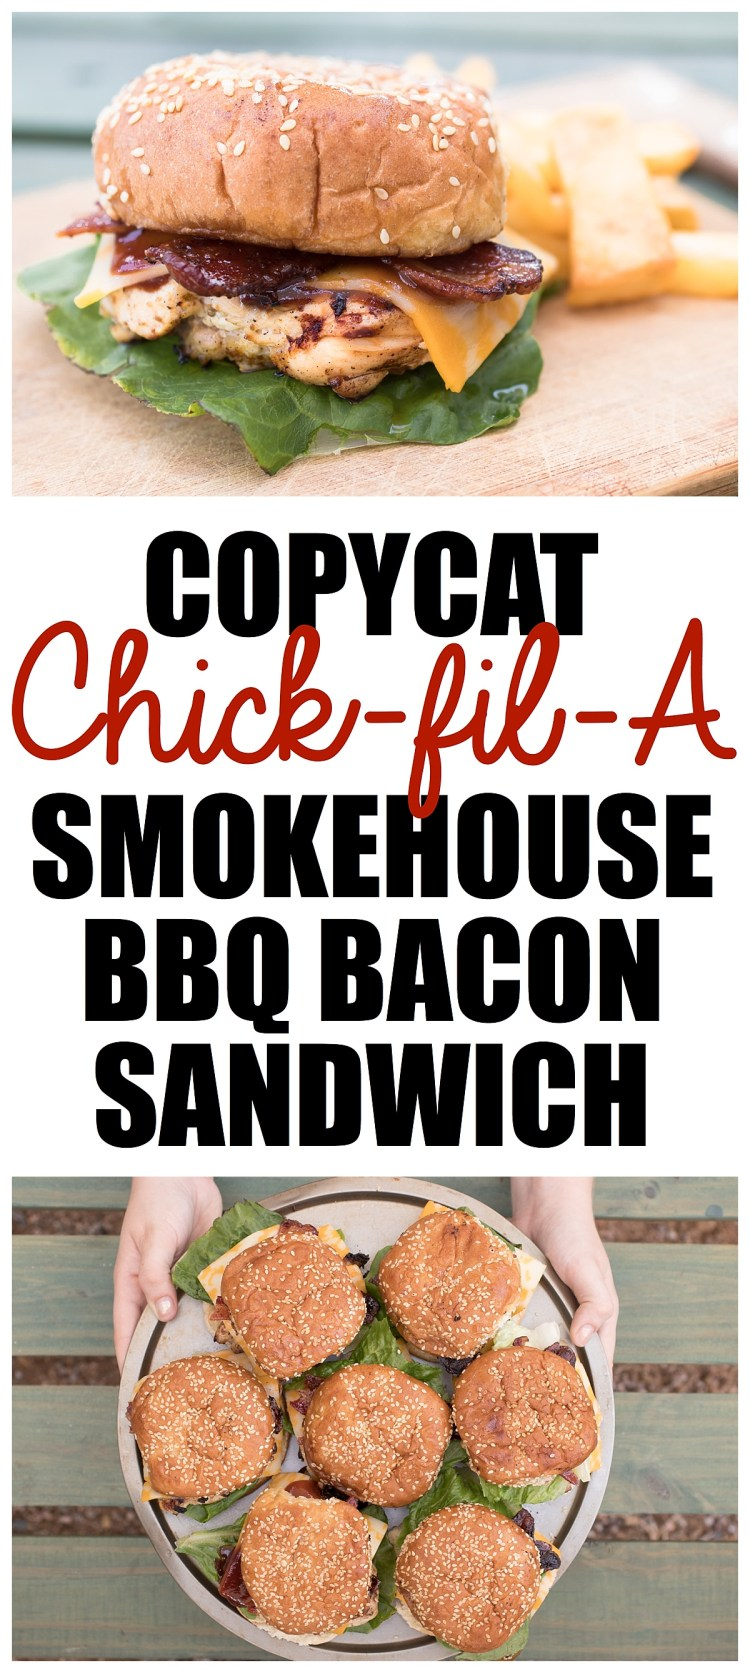 Chick Fil A Copycat Grilled Chicken Smokehouse BBQ Bacon Sandwich | Copycat Chick Fil A Chicken Recipes | Grilled Chicken Recipe | Brown Sugar Bacon | Summer Picnic Food | Labor Day Recipe | Grilled Food